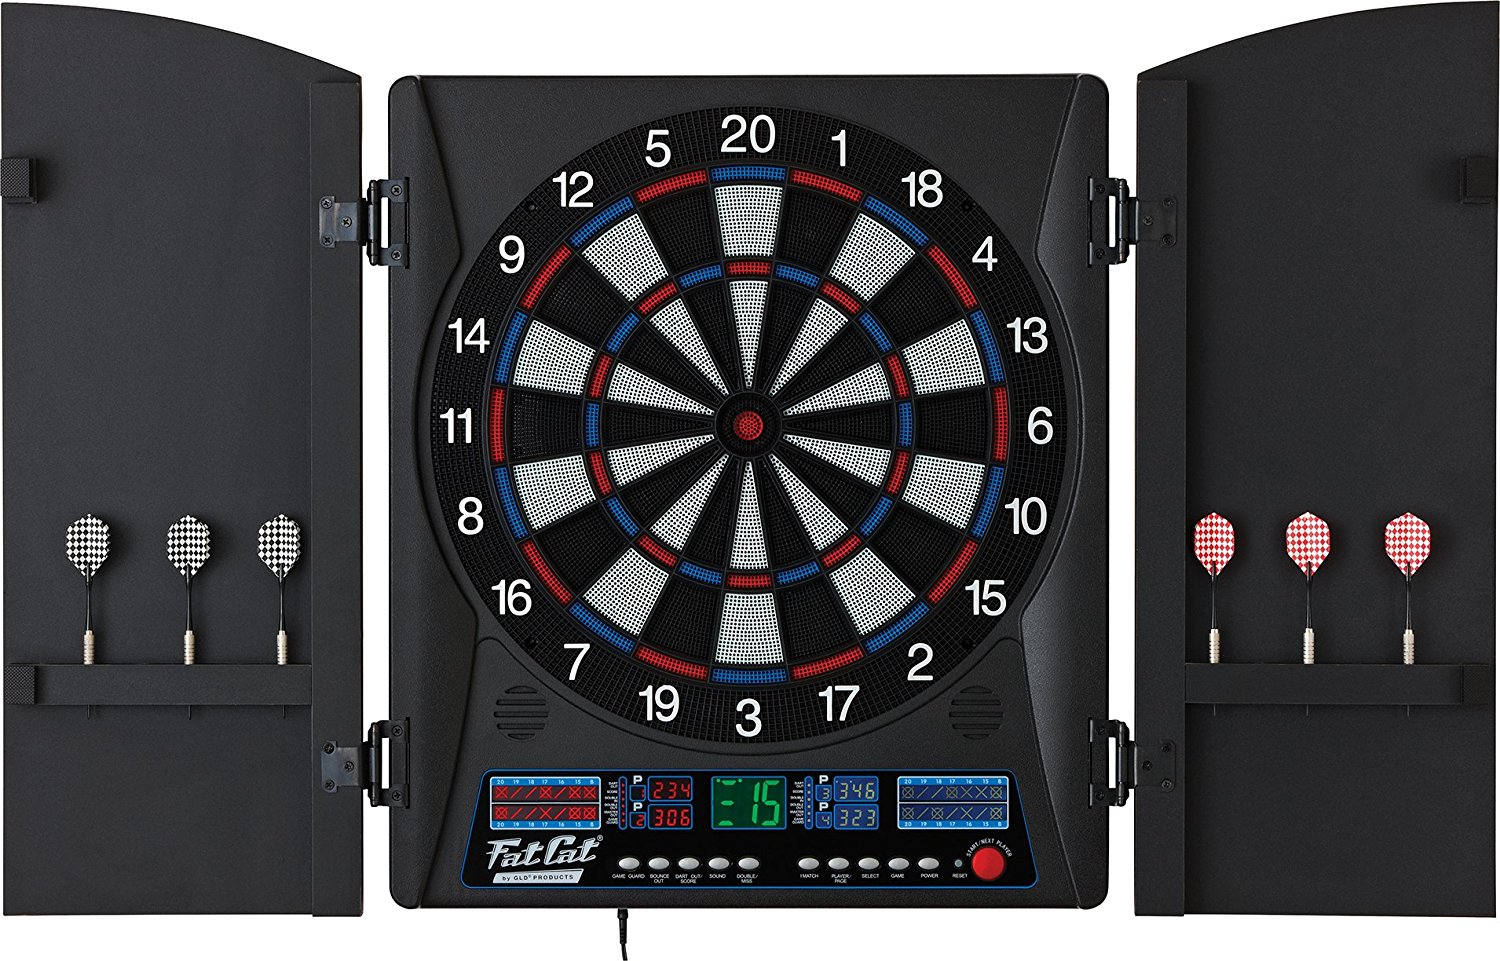 Top 10 Best Electronic Dartboards in 2019 Review